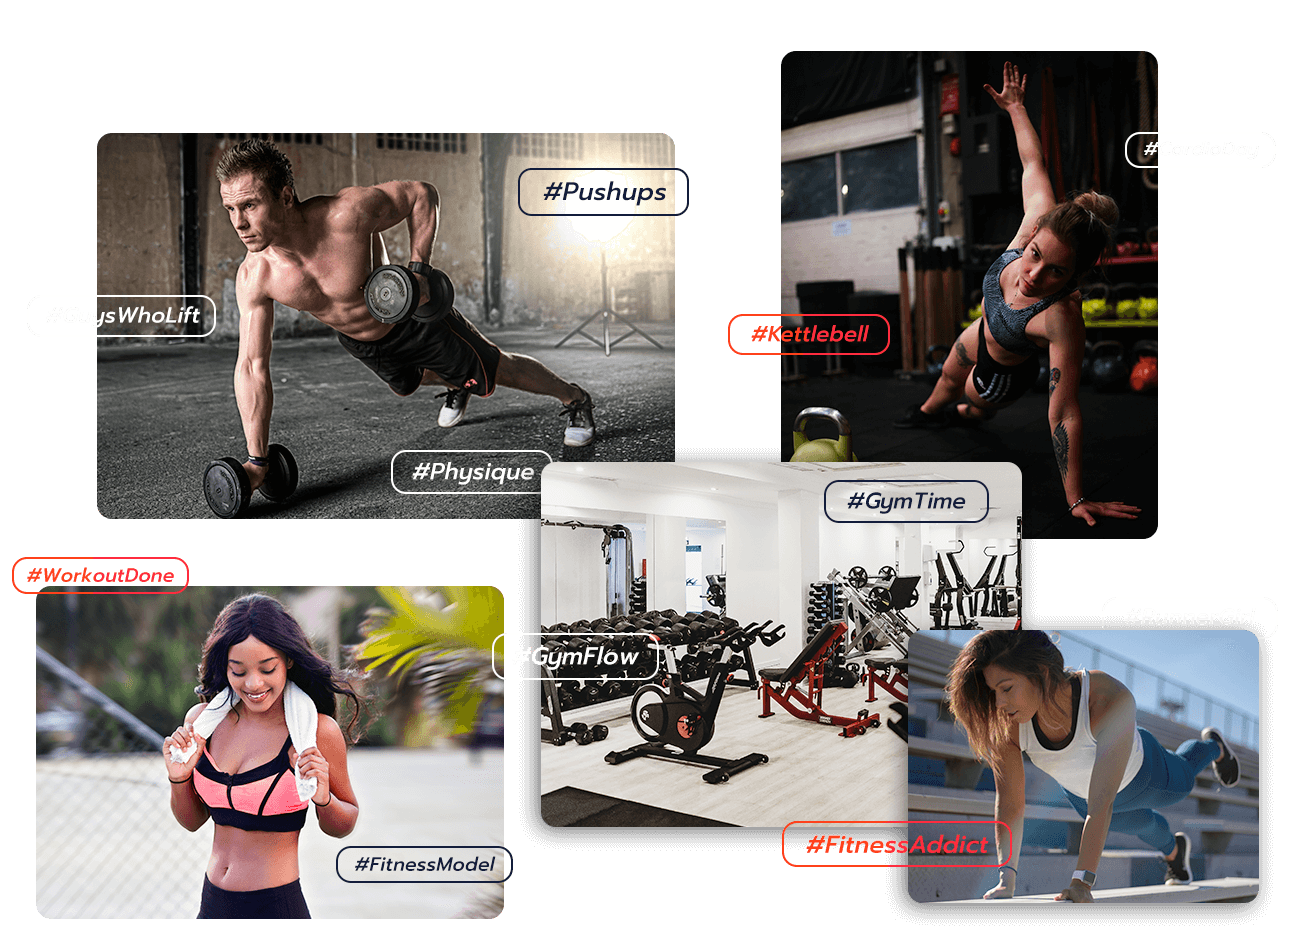 Hashtag Collage over 5 Fitness-related photos